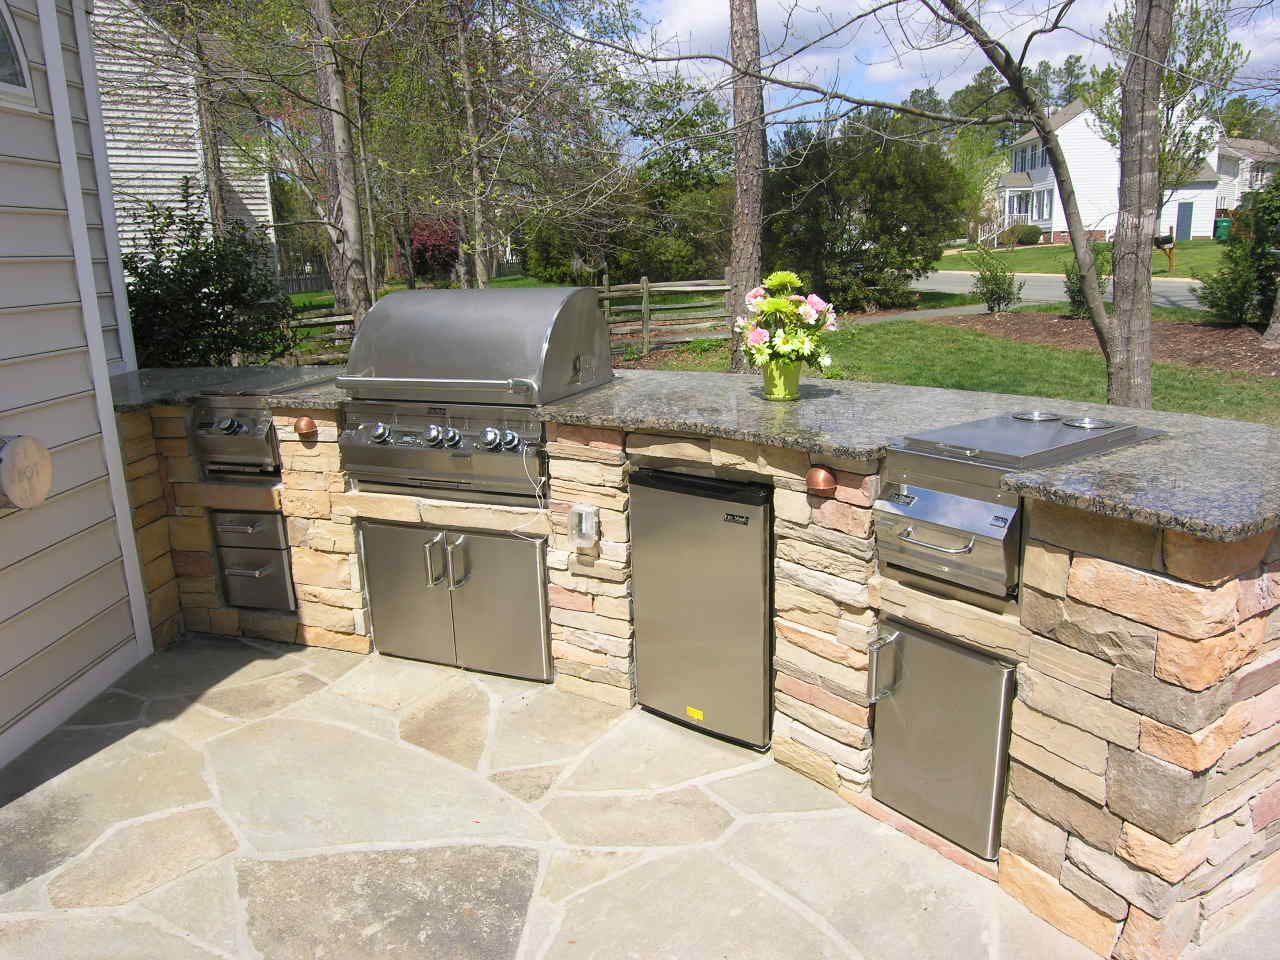 outdoor kitchen design backyard patio with kitchen ideas This custom outdoor kitchen design has space for several outdoor